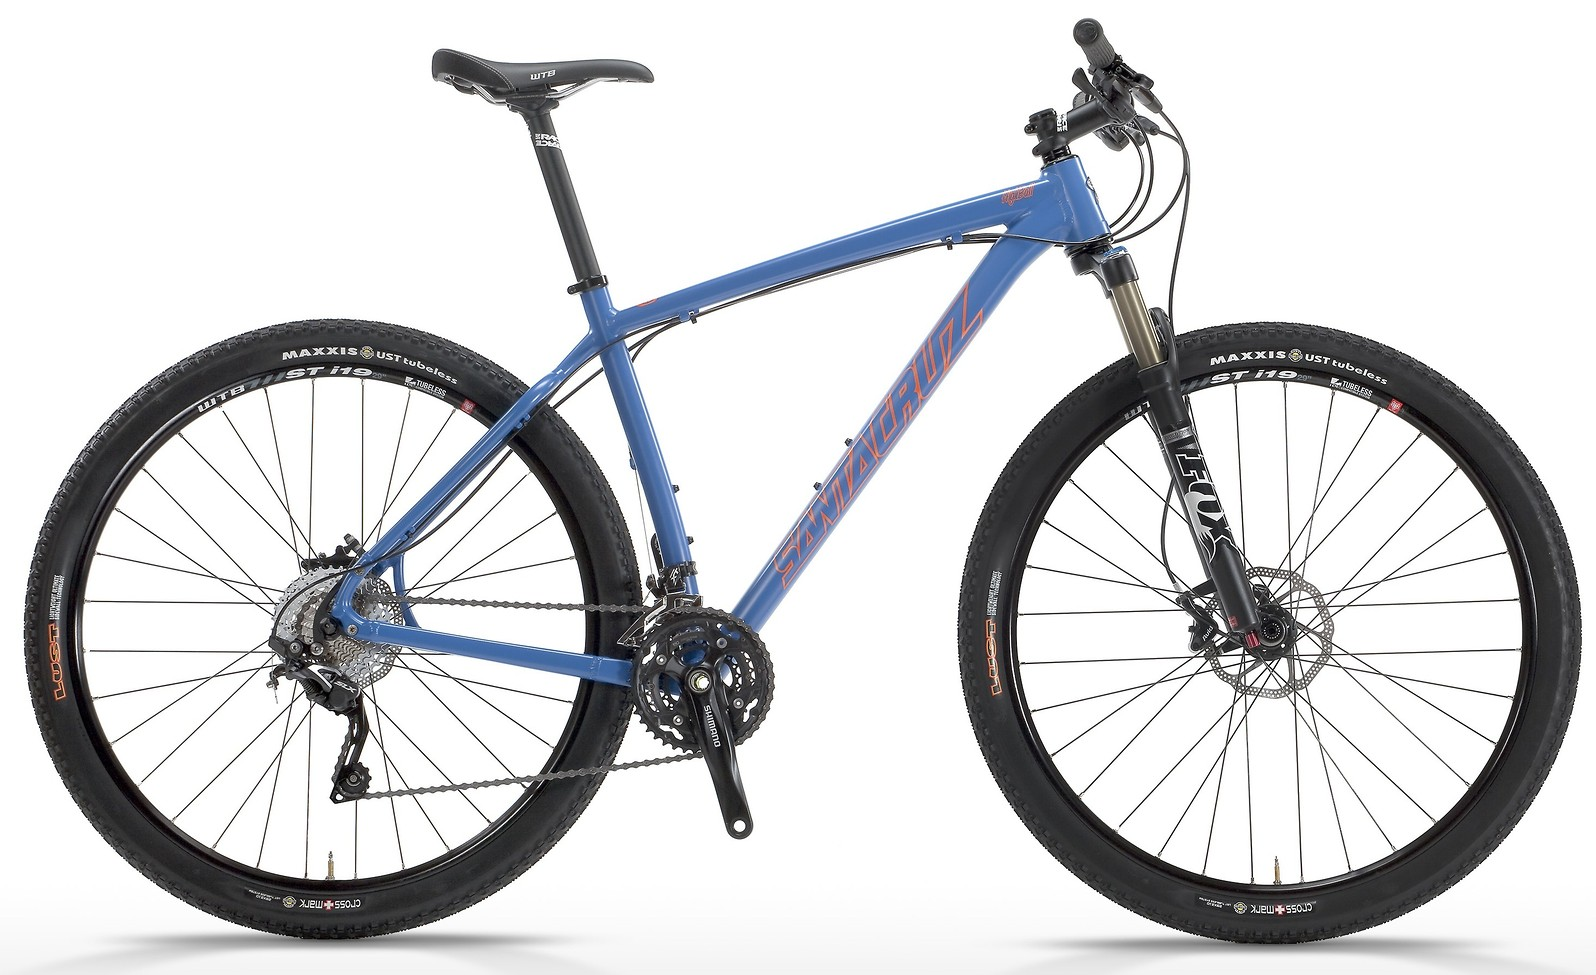 2014 Santa Cruz Highball XTR XC 29 Bike 2013 HIGHBALLcatalogflat